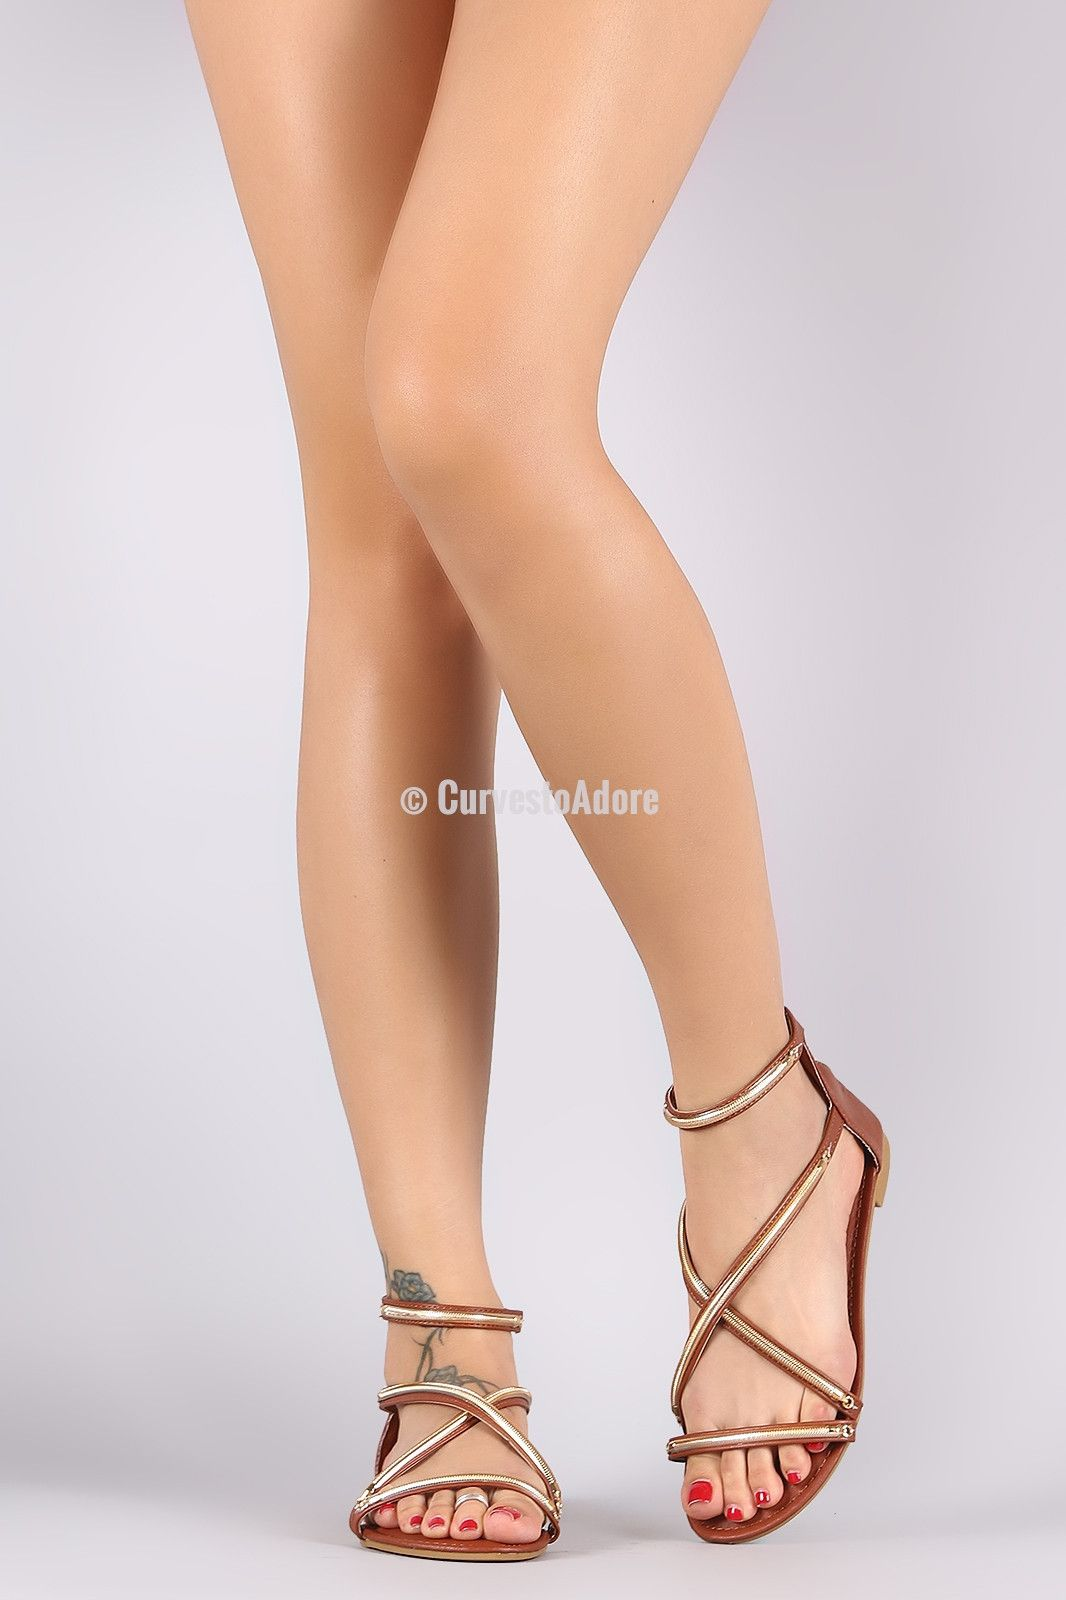 e0c439e9ff1b4 Bamboo Crisscross Metal Hardware Flat Sandal. SPRING IS SO HERE! This is  definitely your kind of fashion!   PlusSizeFashion  CurvestoAdore   PlusisSexy ...